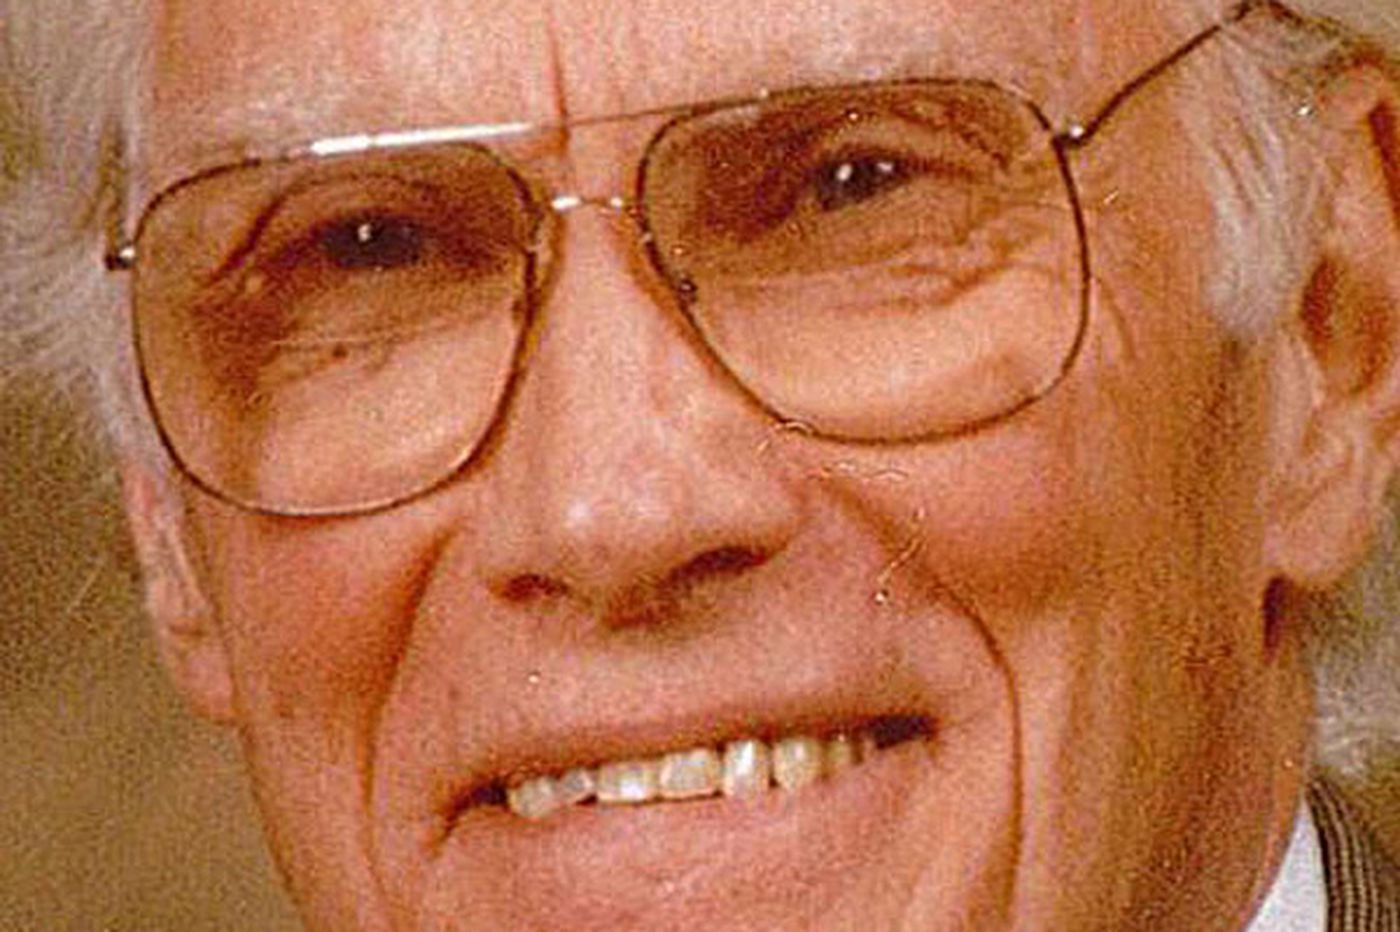 Jack C. Bristoe, 94, attorney from Drexel Hill